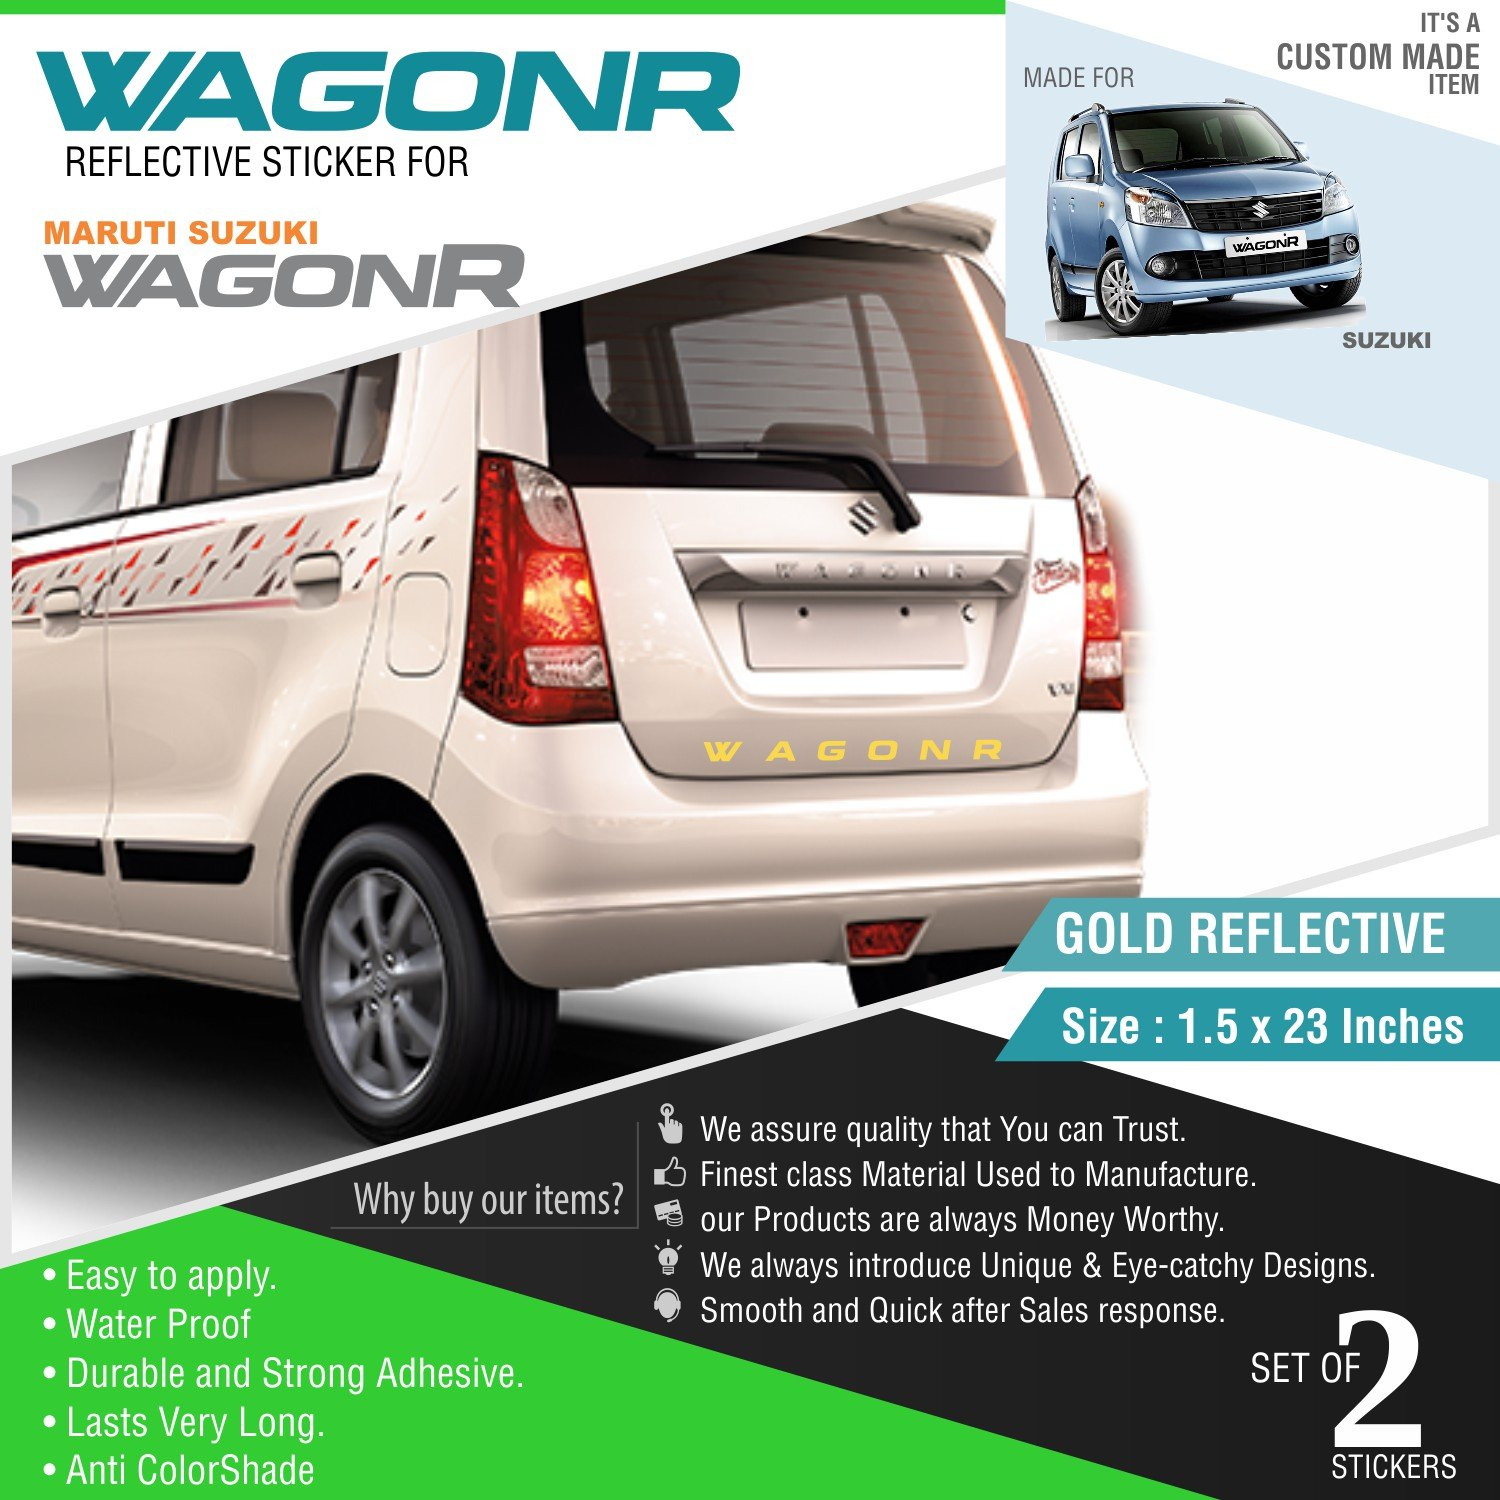 Carmetics wagonr reflective sticker for wagonr2 gold stickers for front and rear amazon in car motorbike